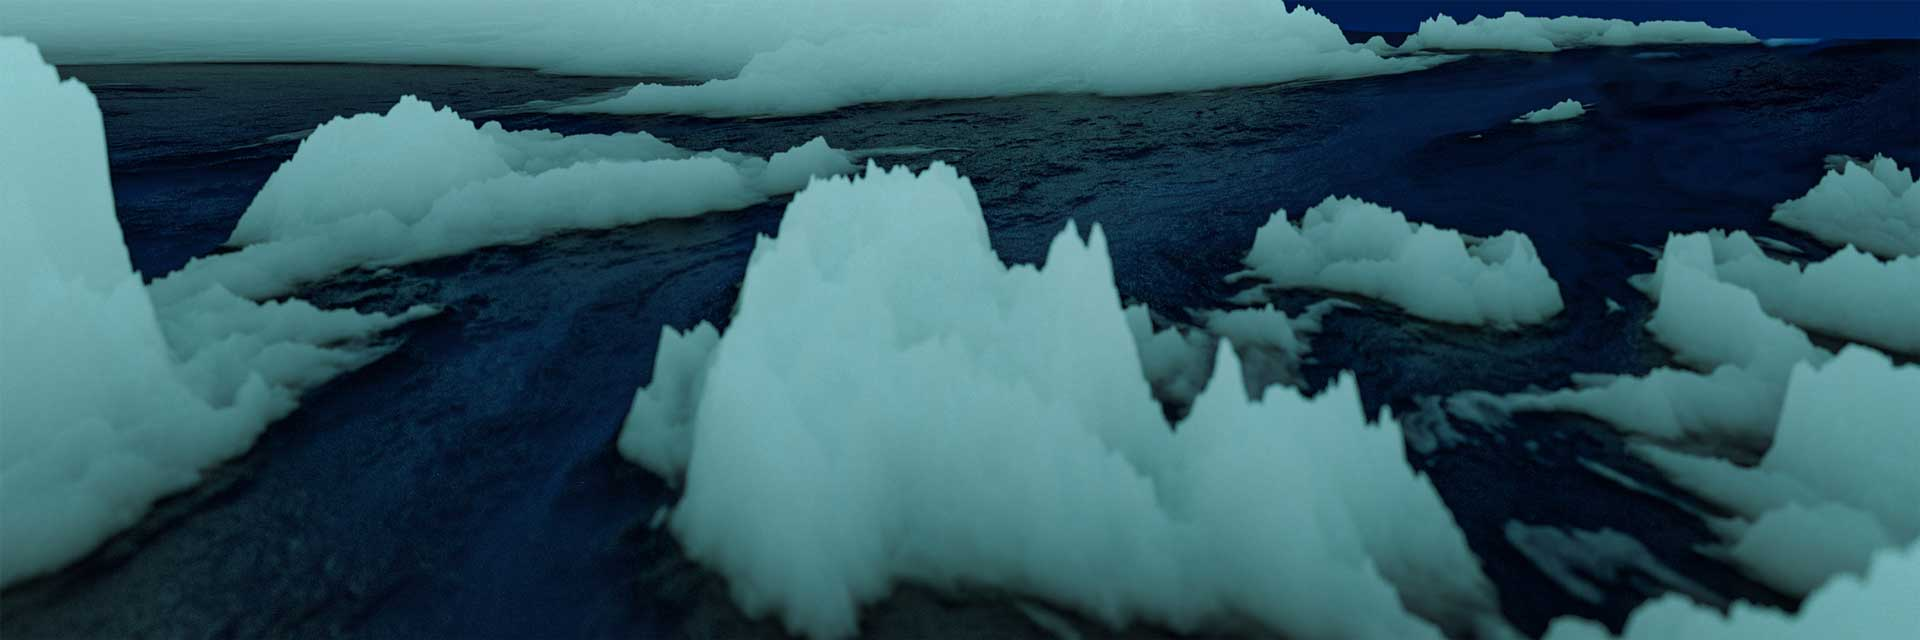 3d blender procedural landscape iceberg